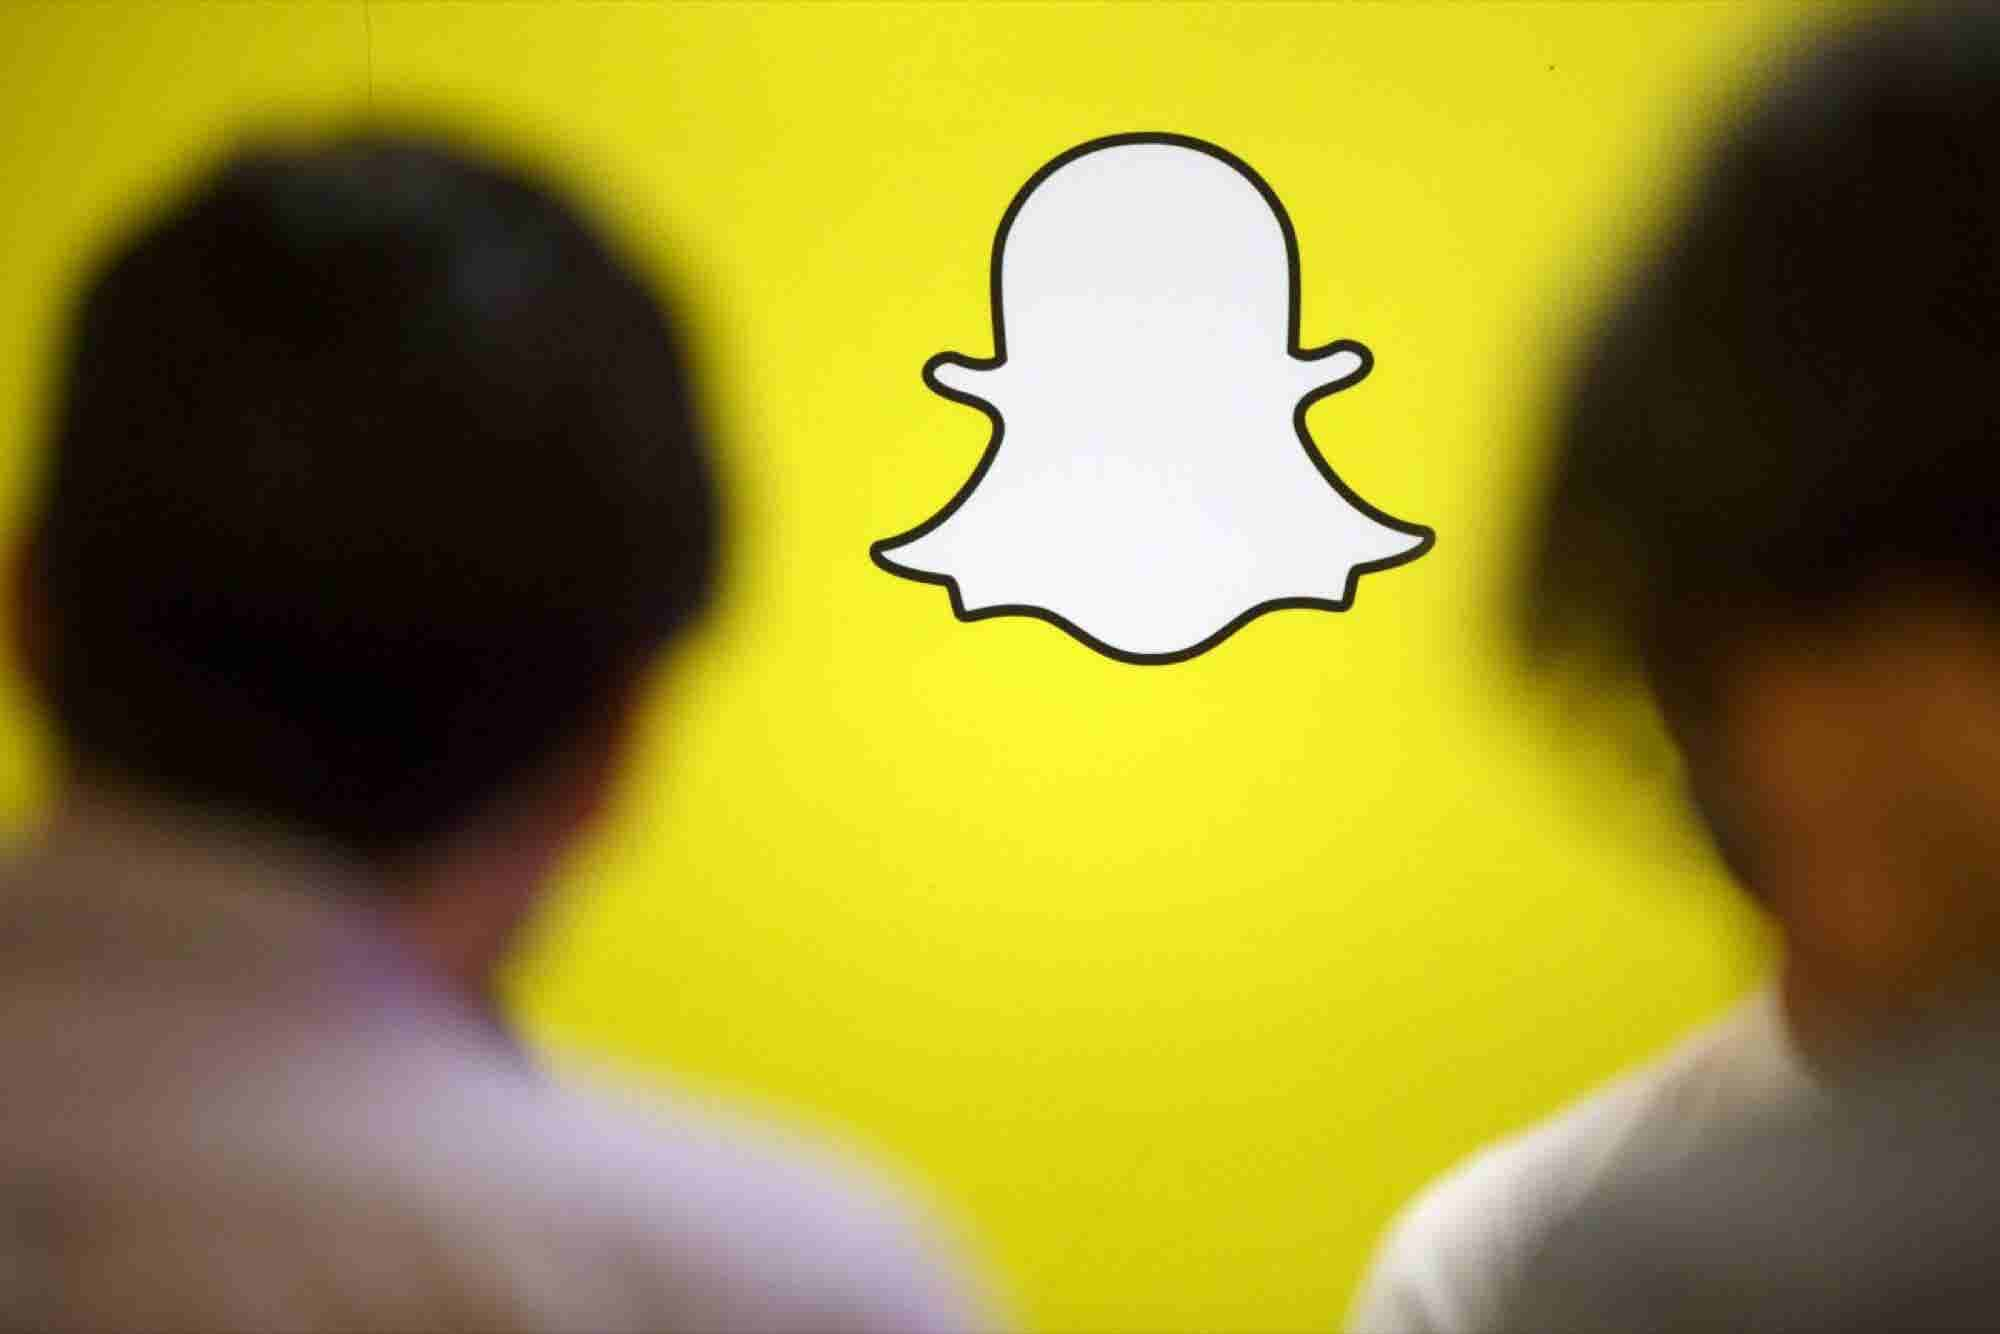 Snapchat's Parent Company Plans to Invest $1.5 Million in Media Startups